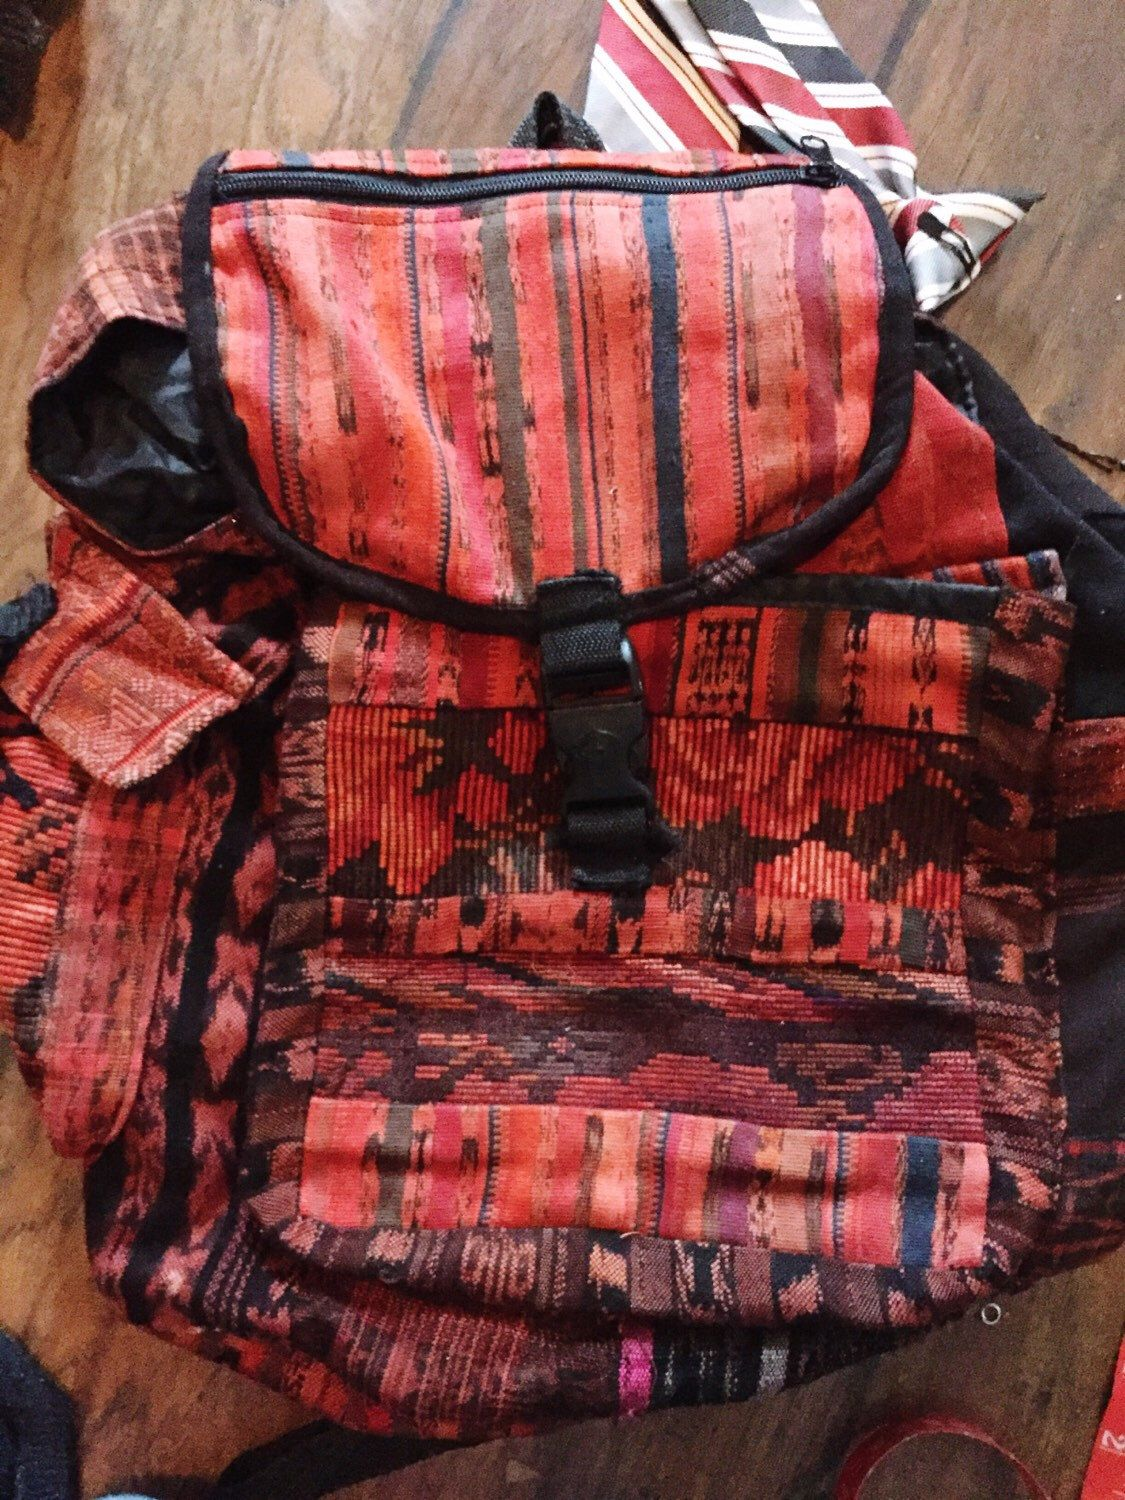 Unique boho hippie backpack red and black tribal patterened by OhmannSquiresCrafts on Etsy https://www.etsy.com/listing/286989825/unique-boho-hippie-backpack-red-and